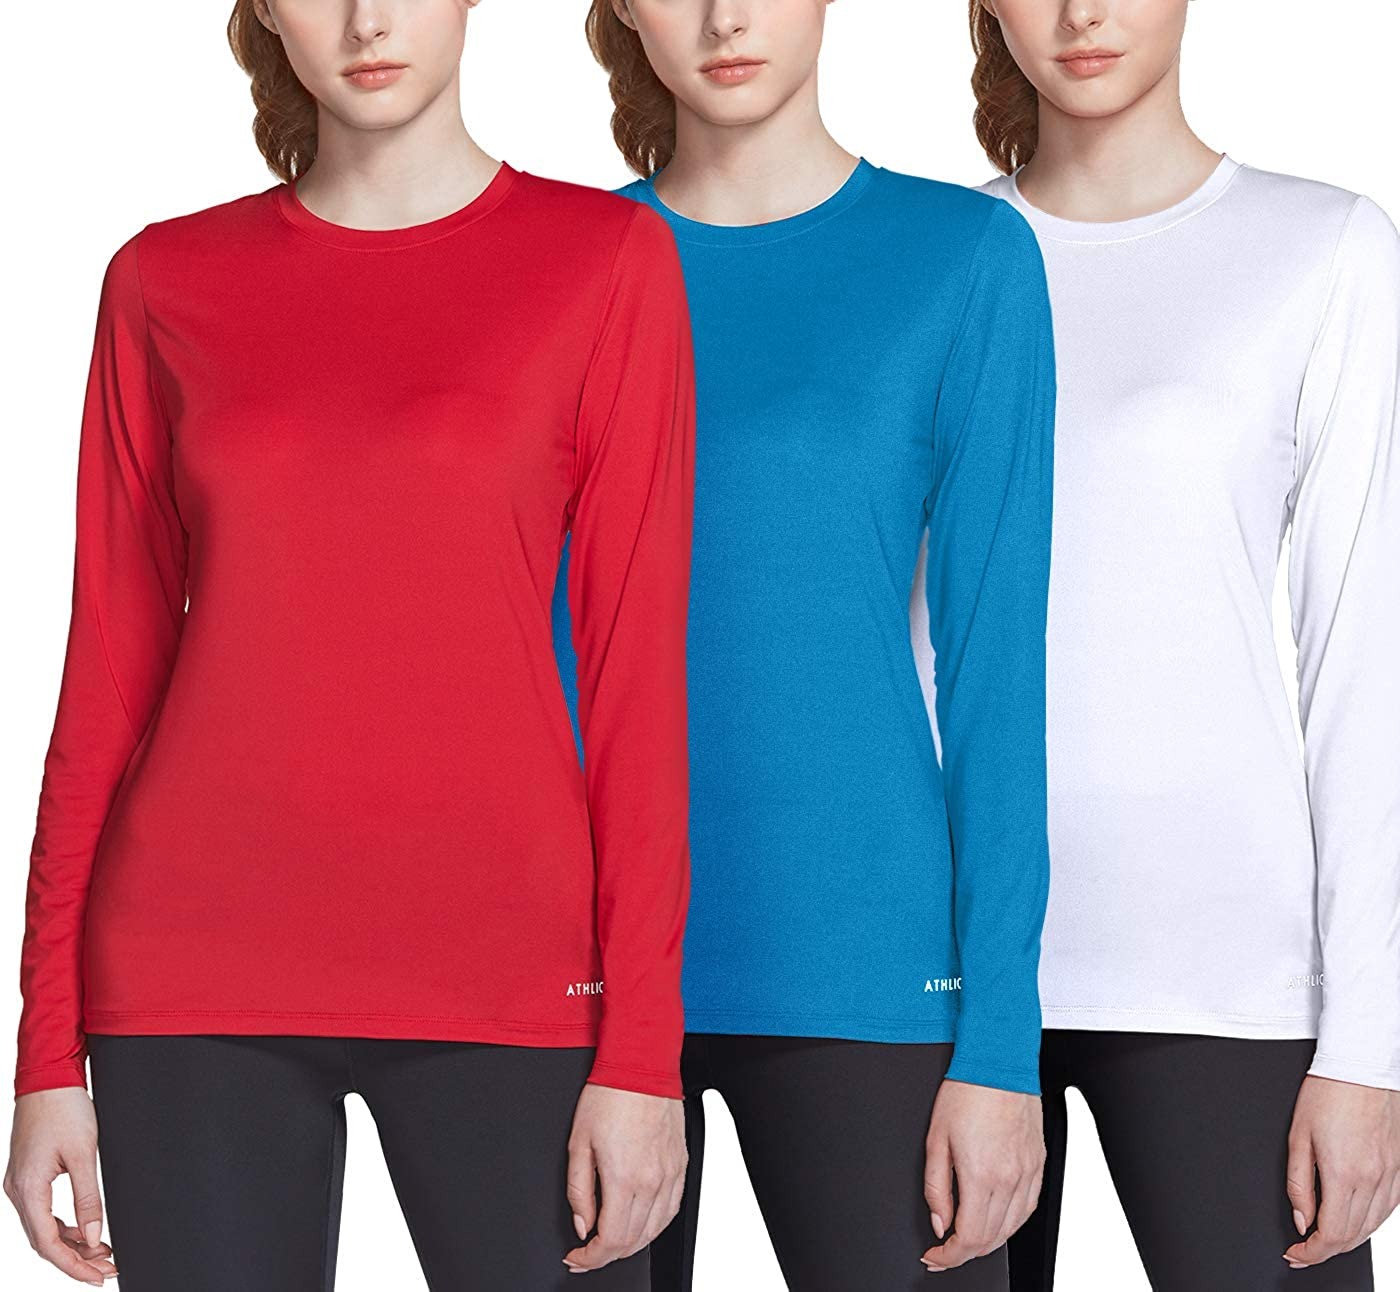 ATHLIO 2 or 3 Pack Women's UPF 50+ Long Sleeve Workout Shirts, UV Sun Protection Running Shirt, Dry Fit Athletic Tops: Clothing